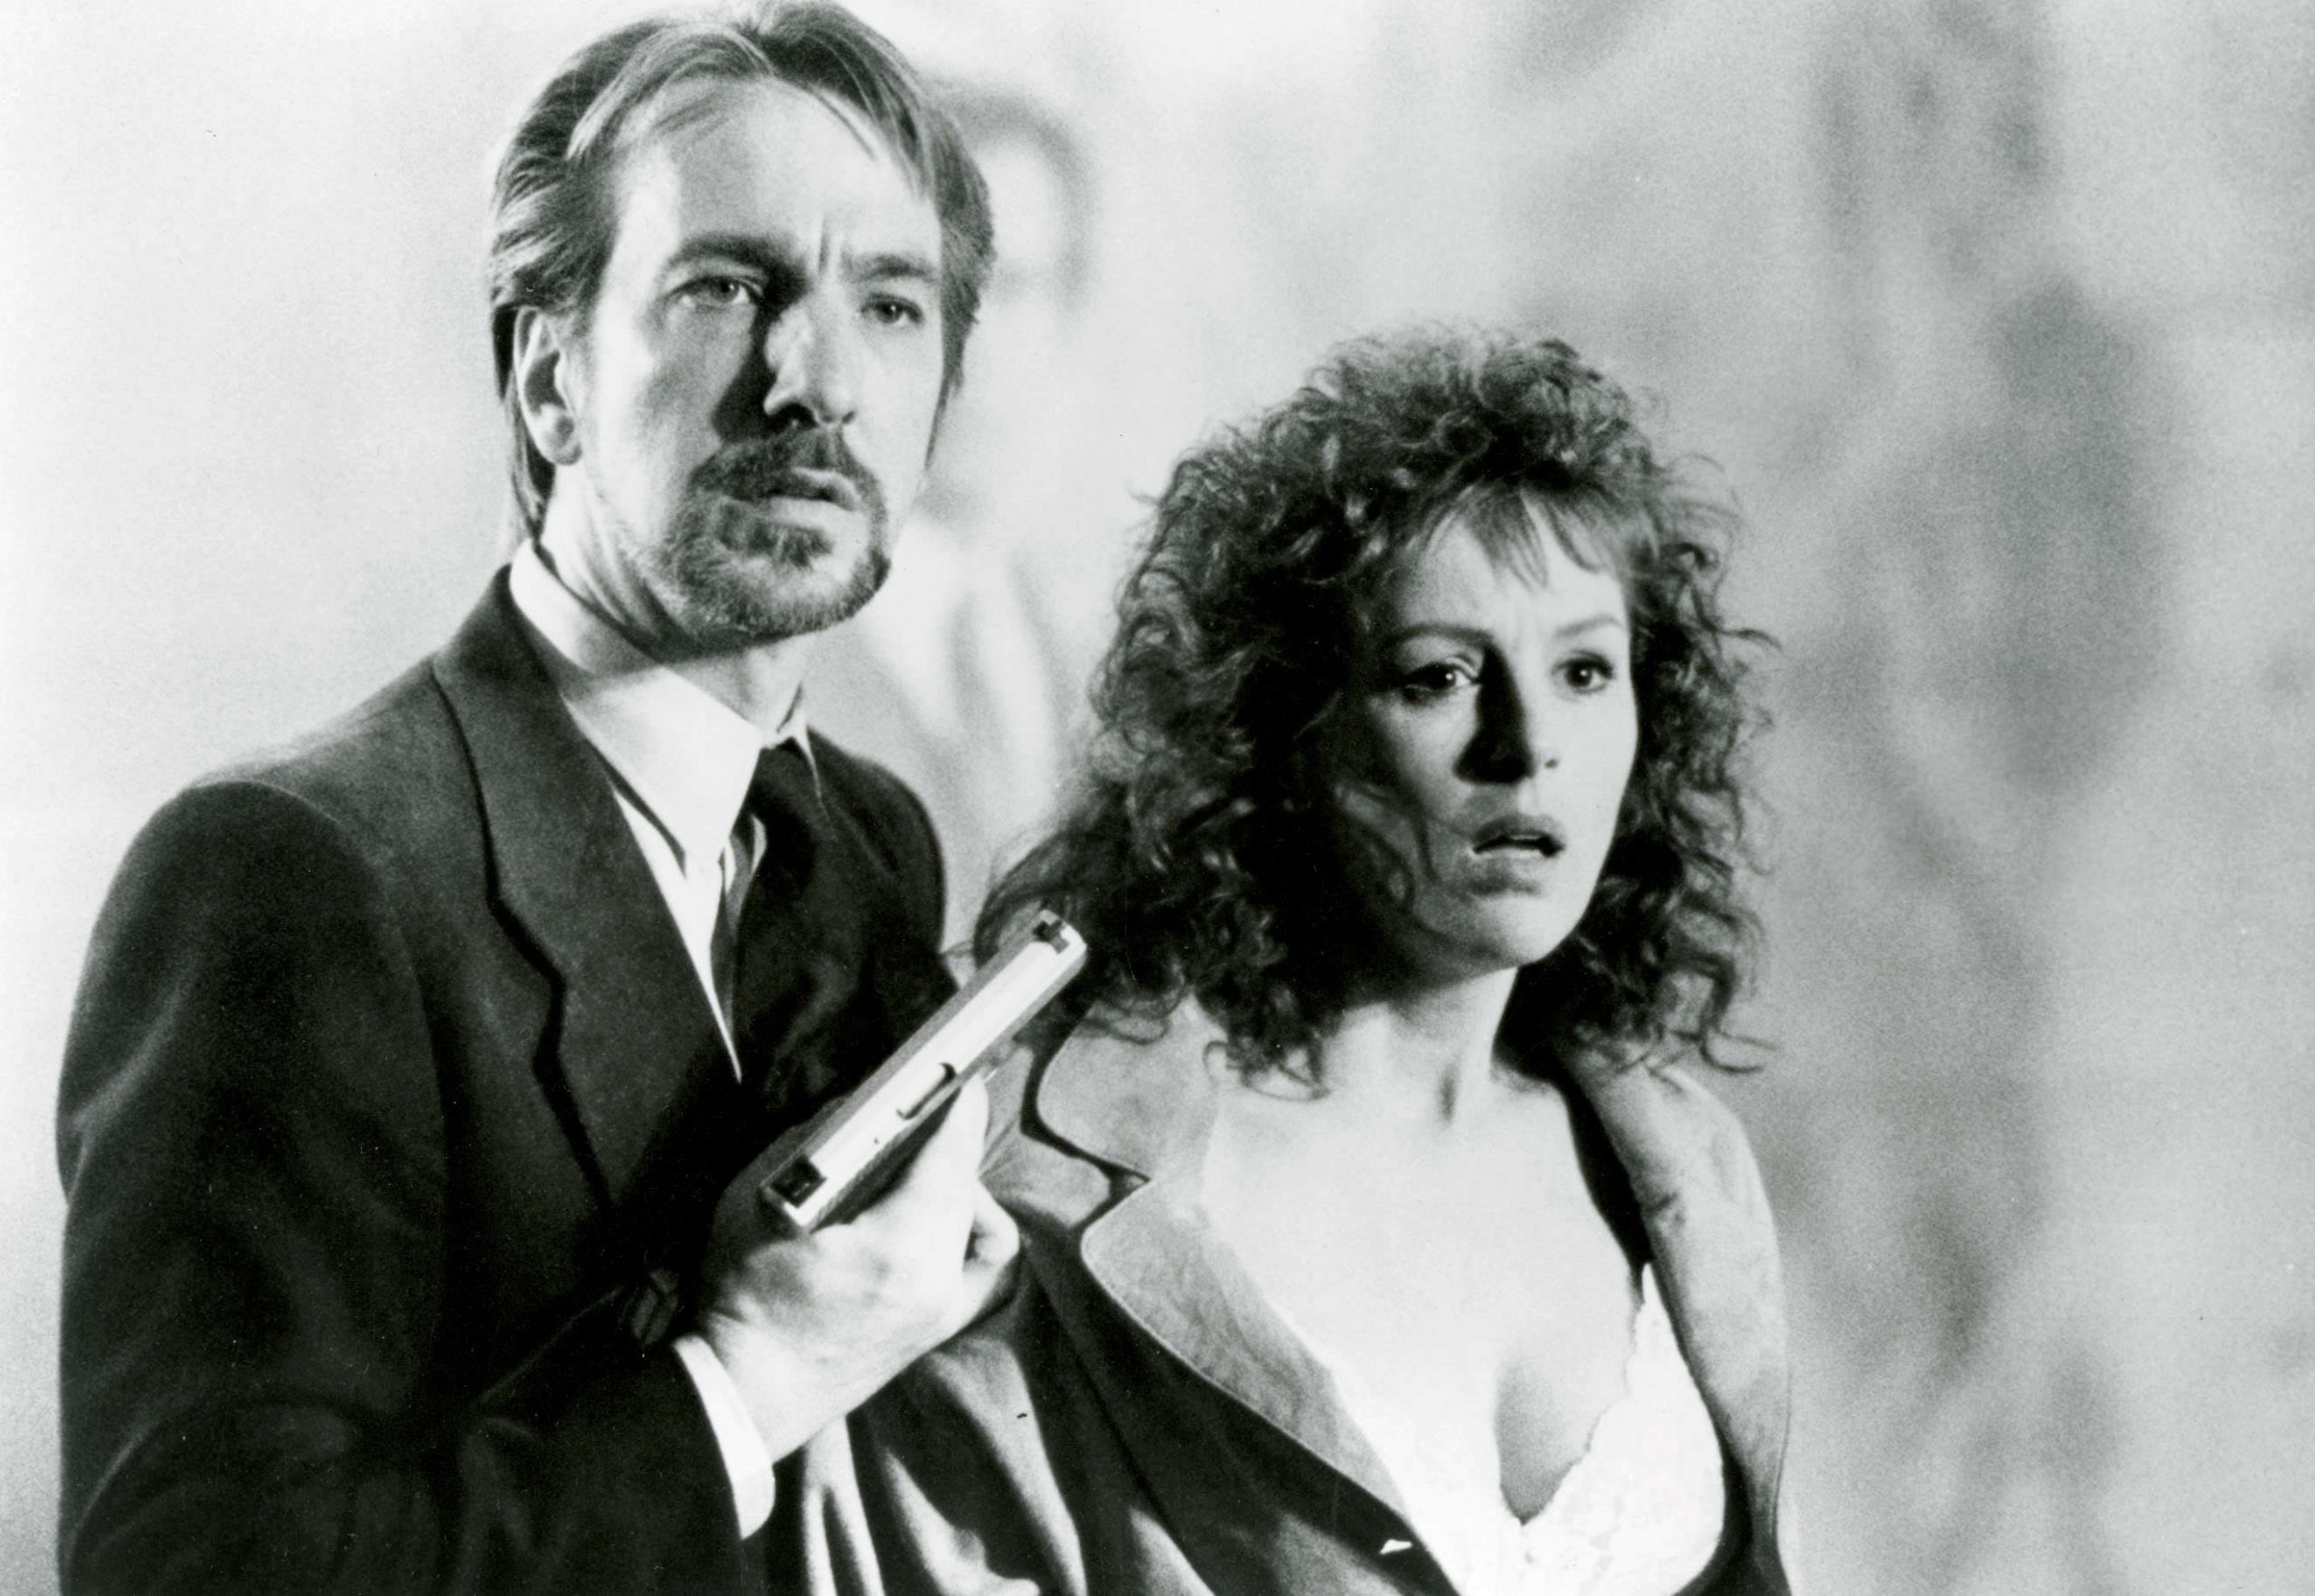 A black and white image from Die Hard of Gruber and Holly